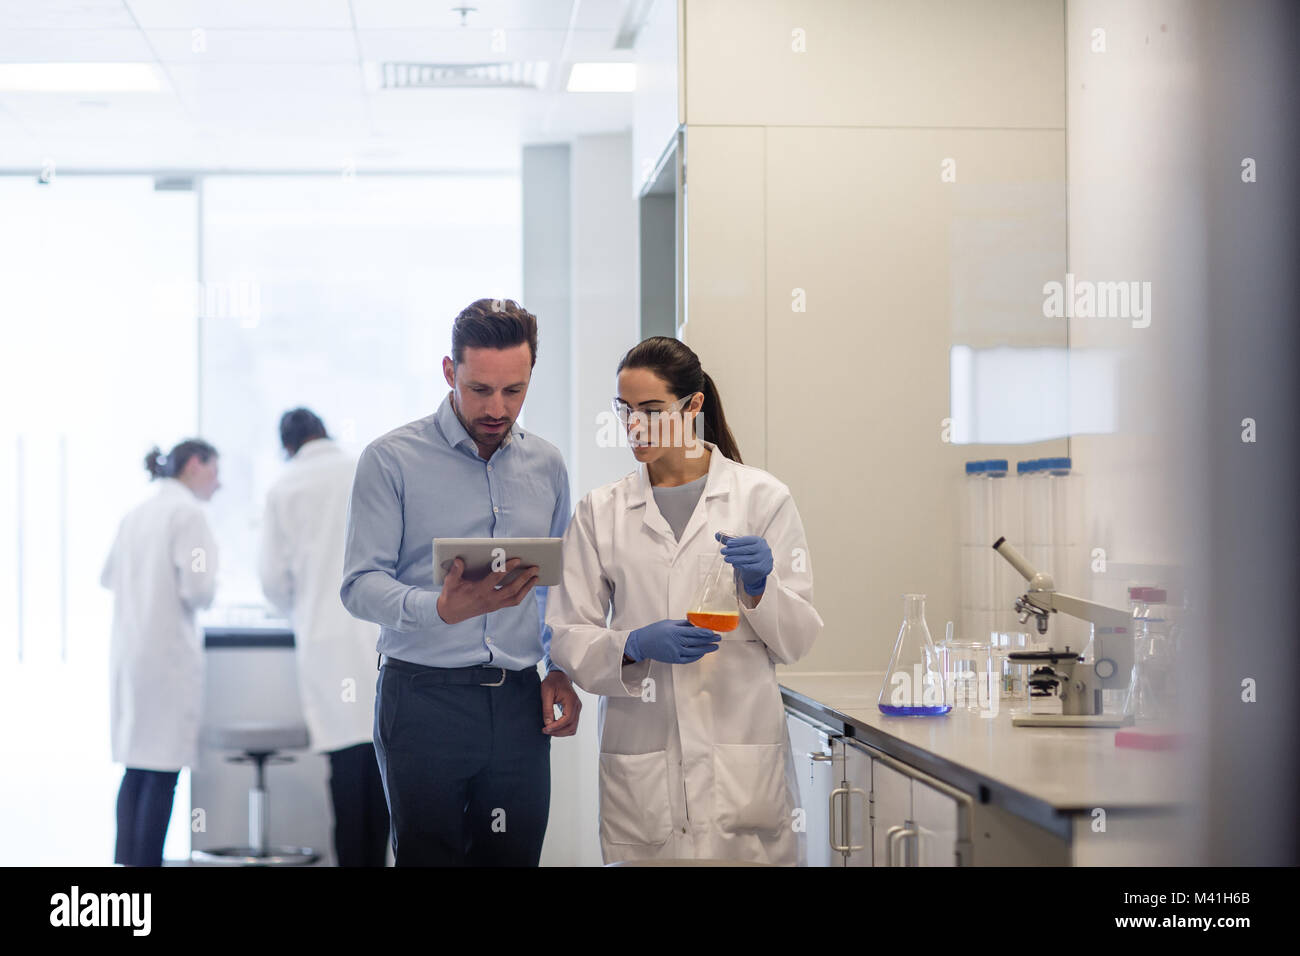 Female scientist discussing results of experiment with male colleague - Stock Image